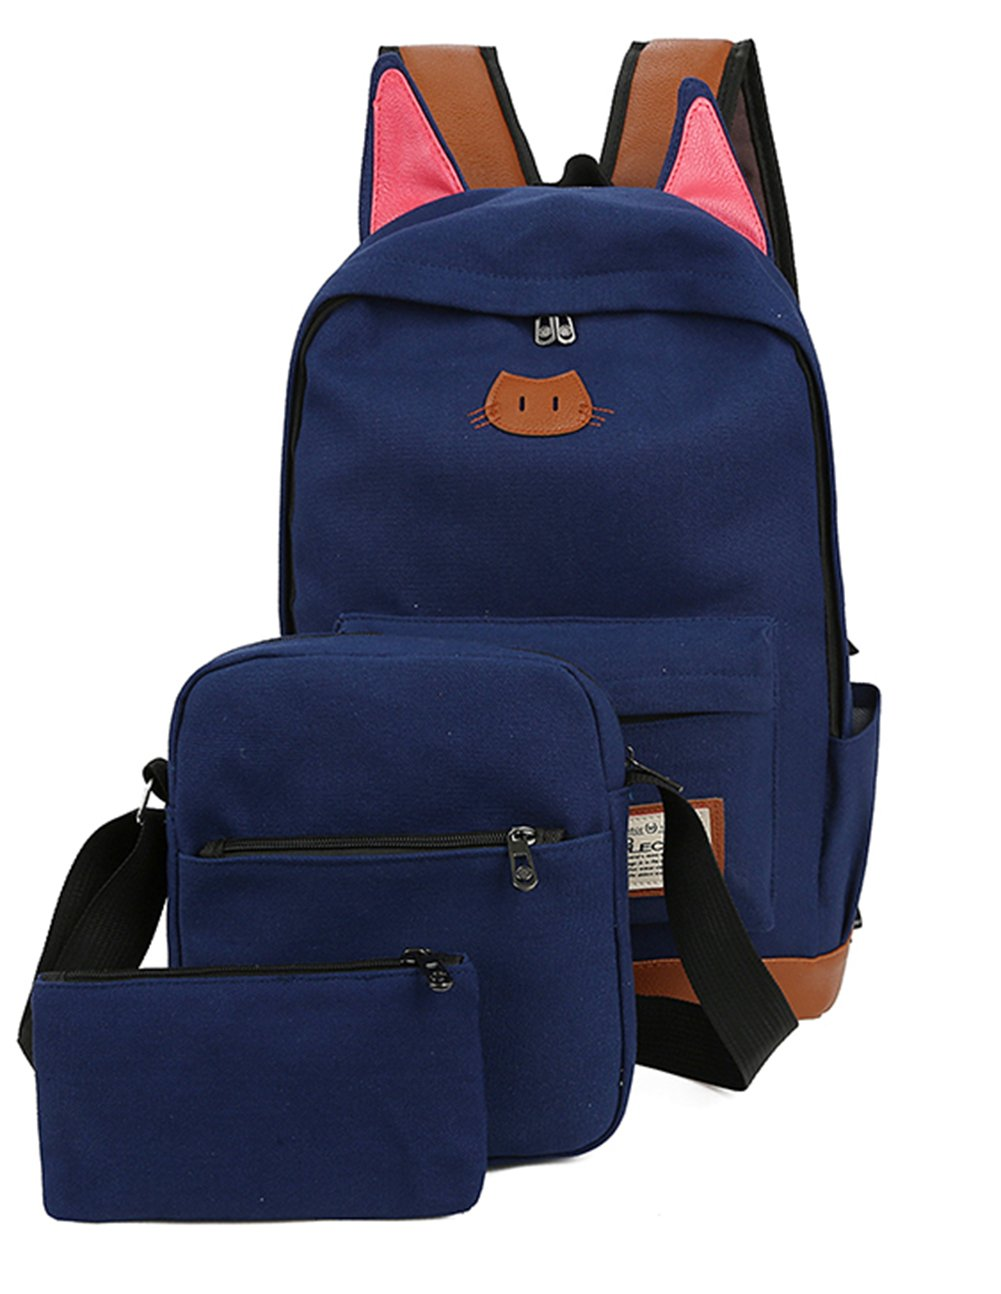 Moolecole Super Cute Cat Ears School Backpack Bag with Shoulder Bag   Pencil  Case Pounch, f3cad5eed3